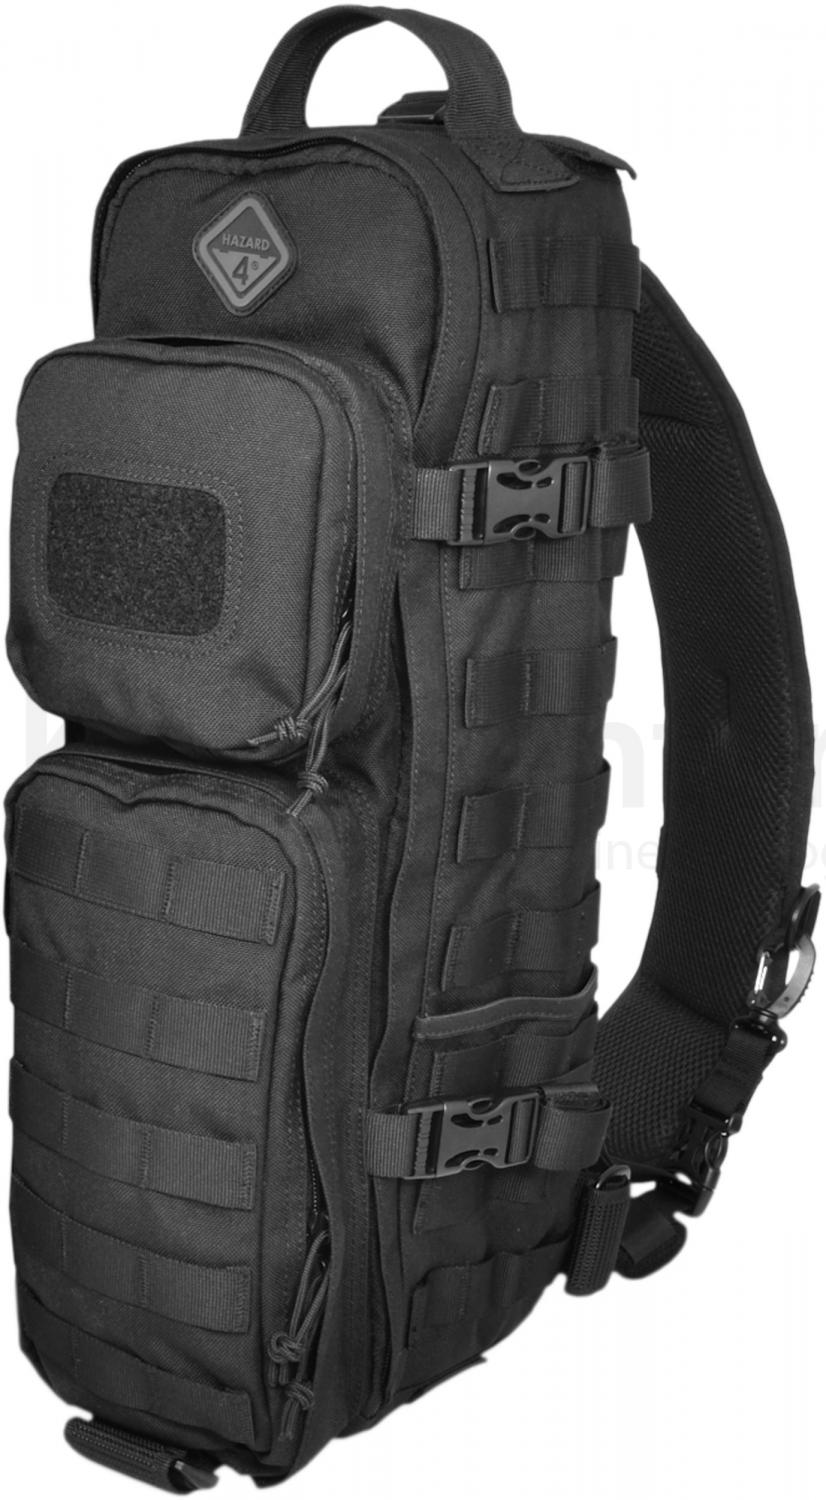 Hazard 4 Evac Plan B Sling Pack, Black